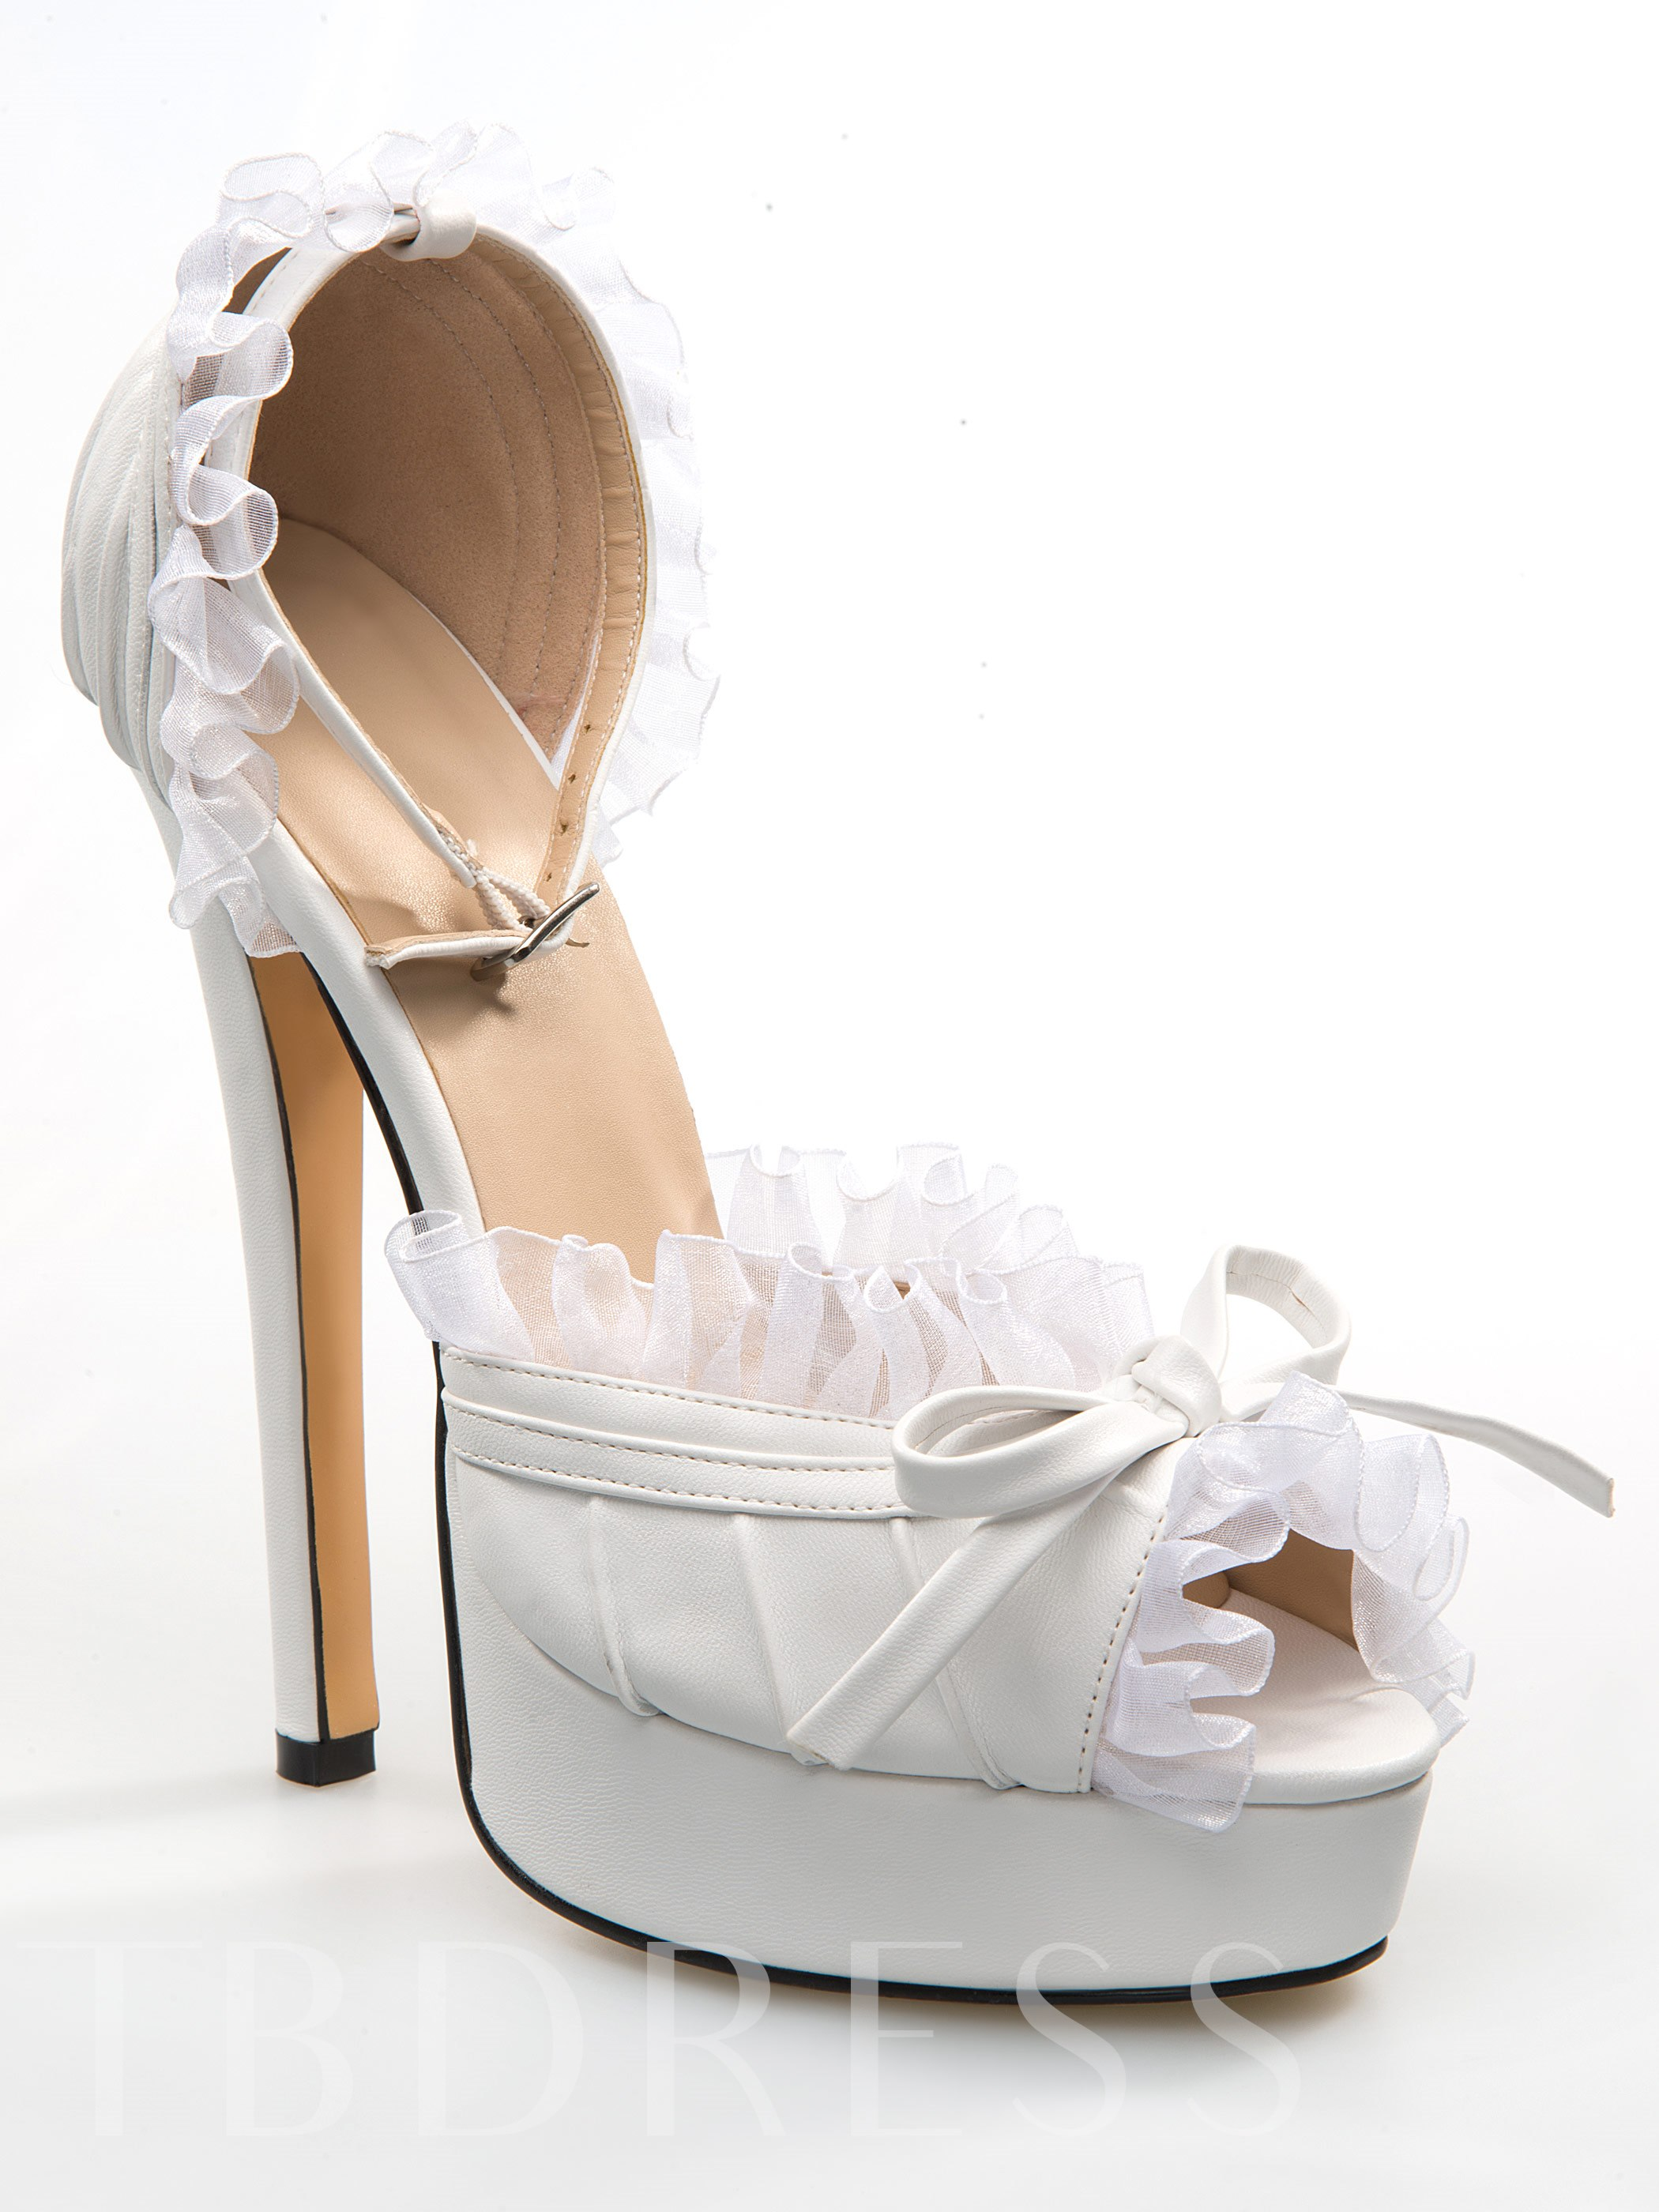 White PU Peep Toe Ankle Strap High Heel Shoes & Wedding Shoes